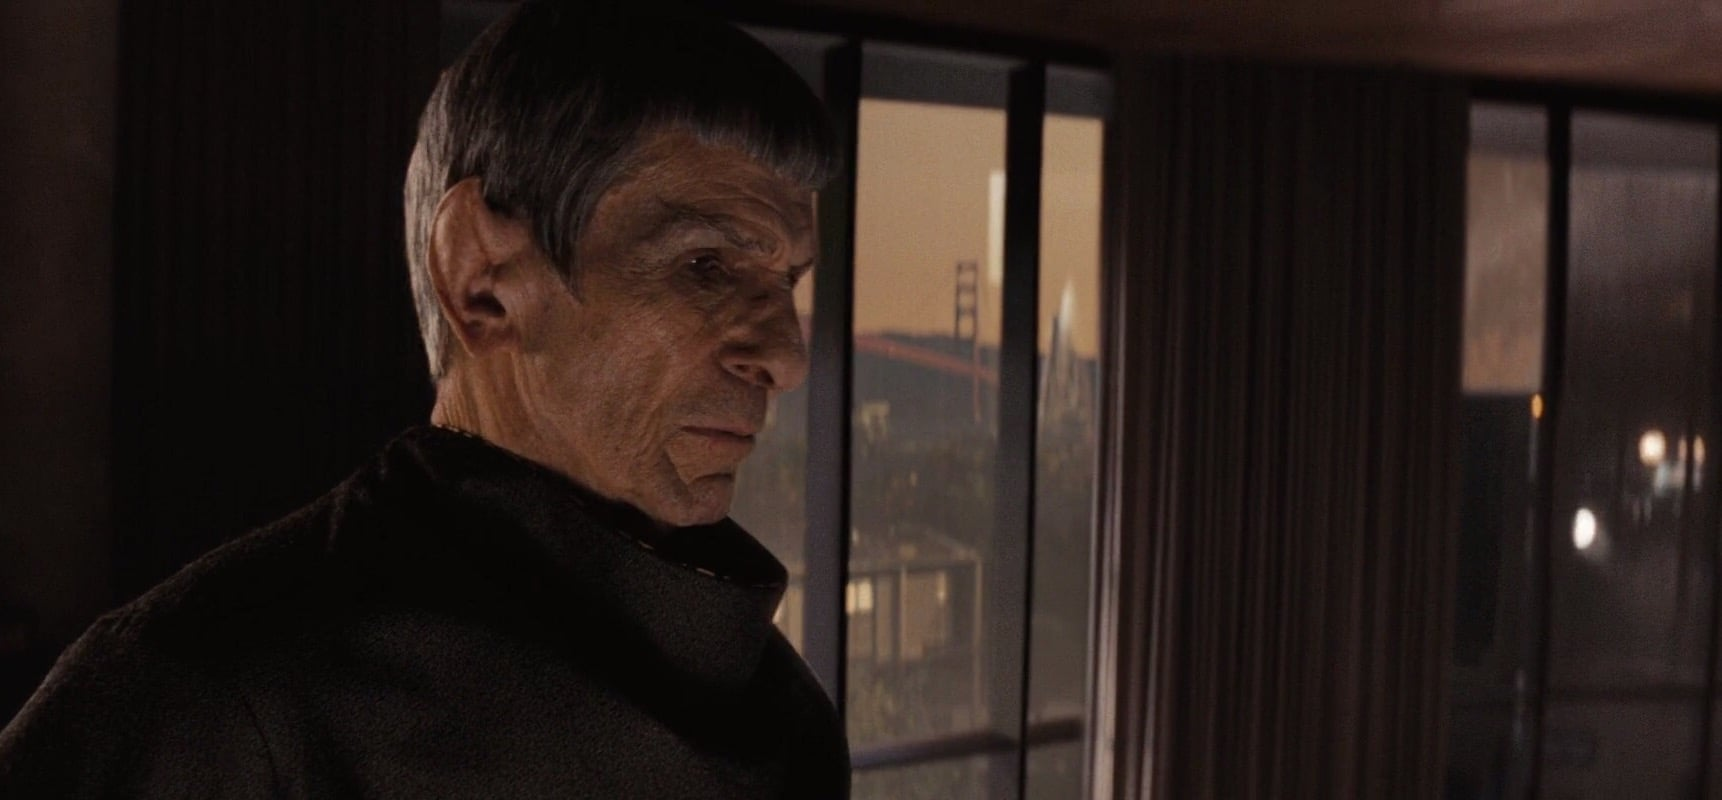 Leonard Nimoy in Star Trek (2009)